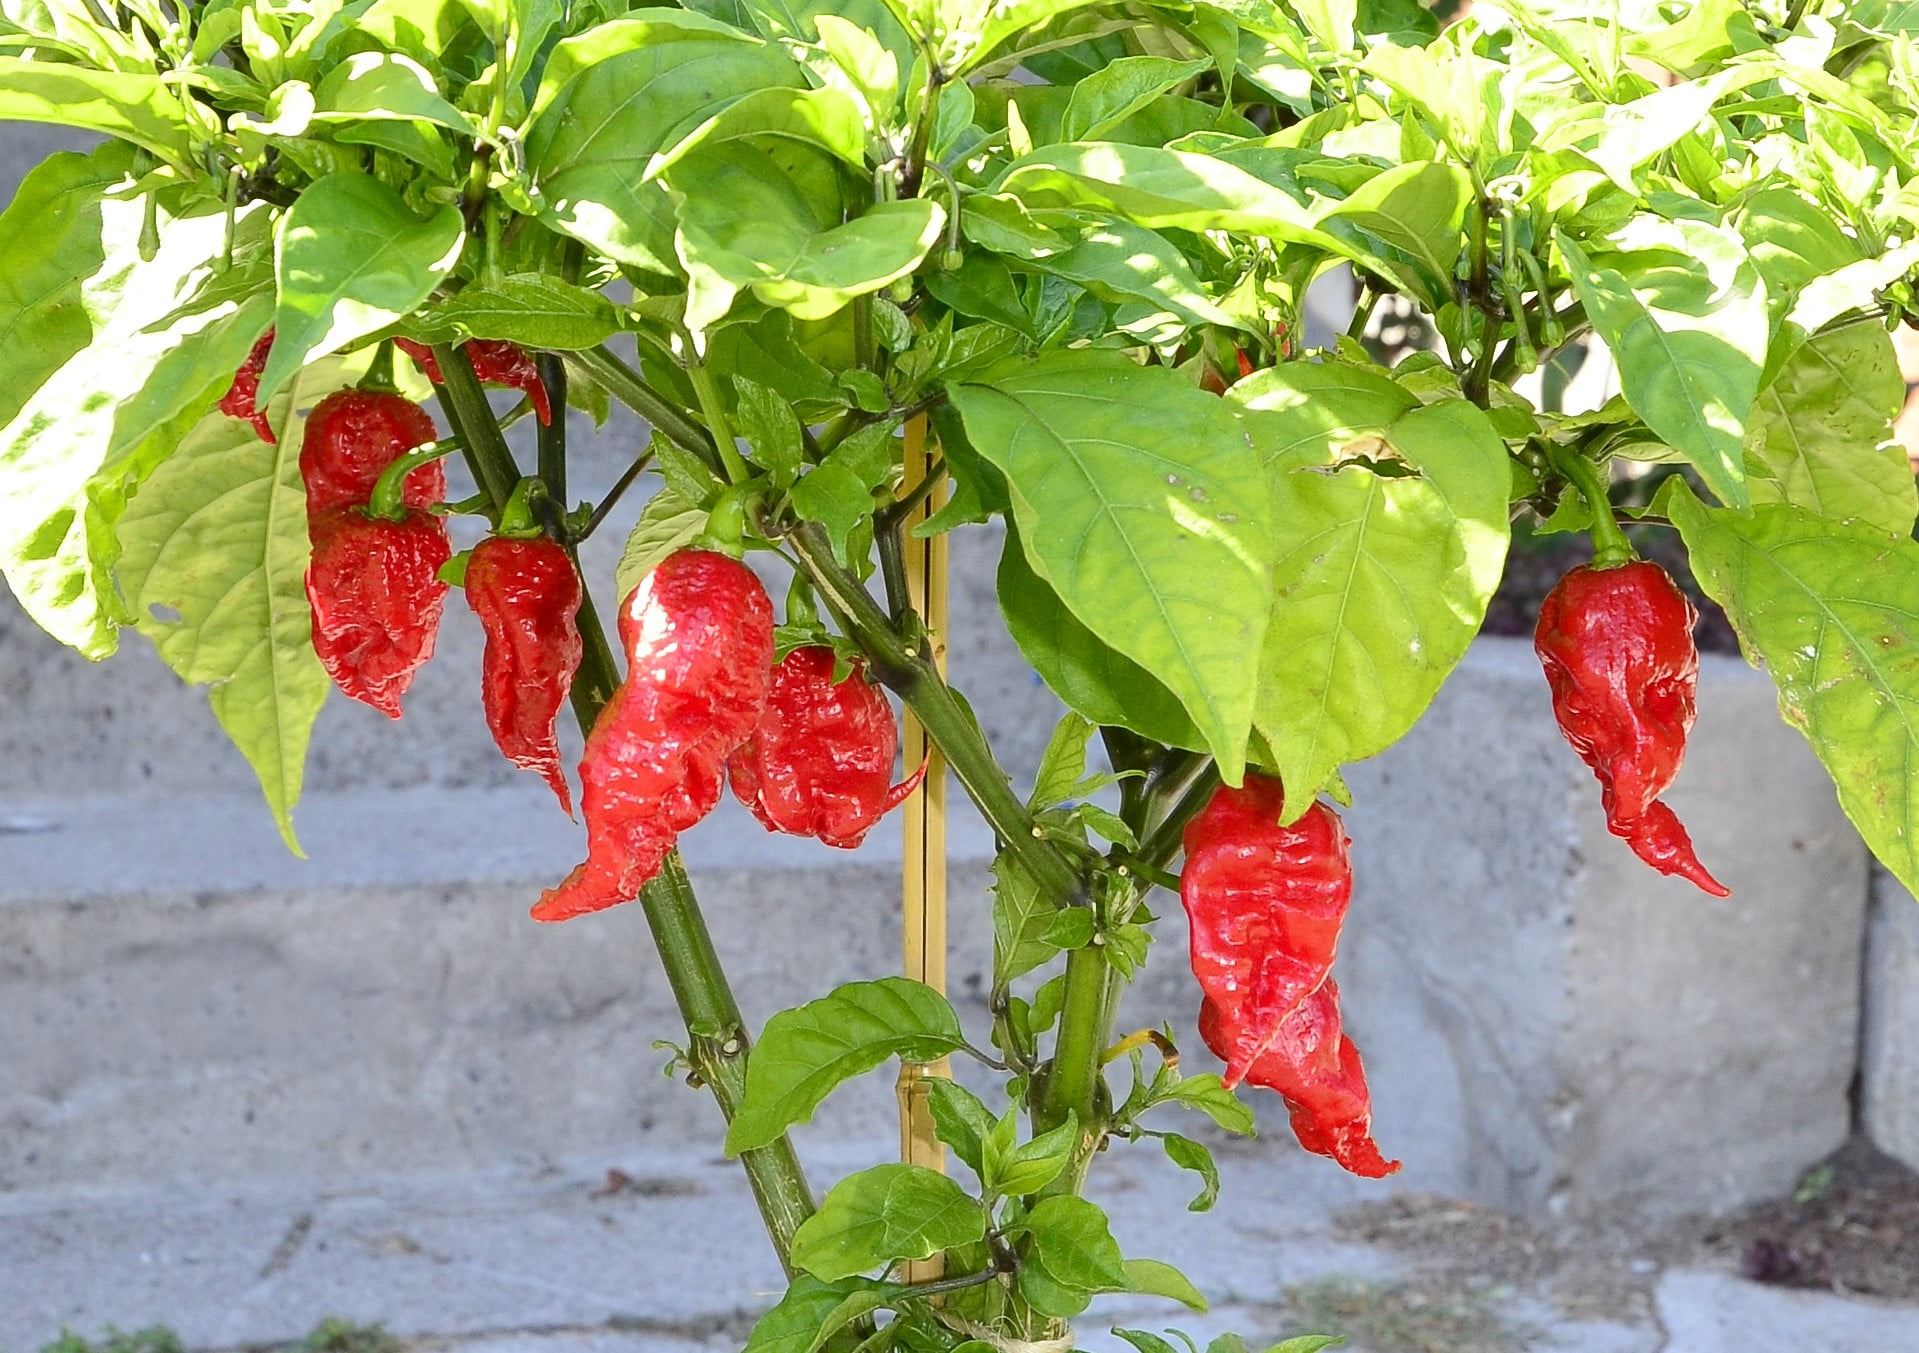 Mature California Reaper chilli peppers. Image: Scimex